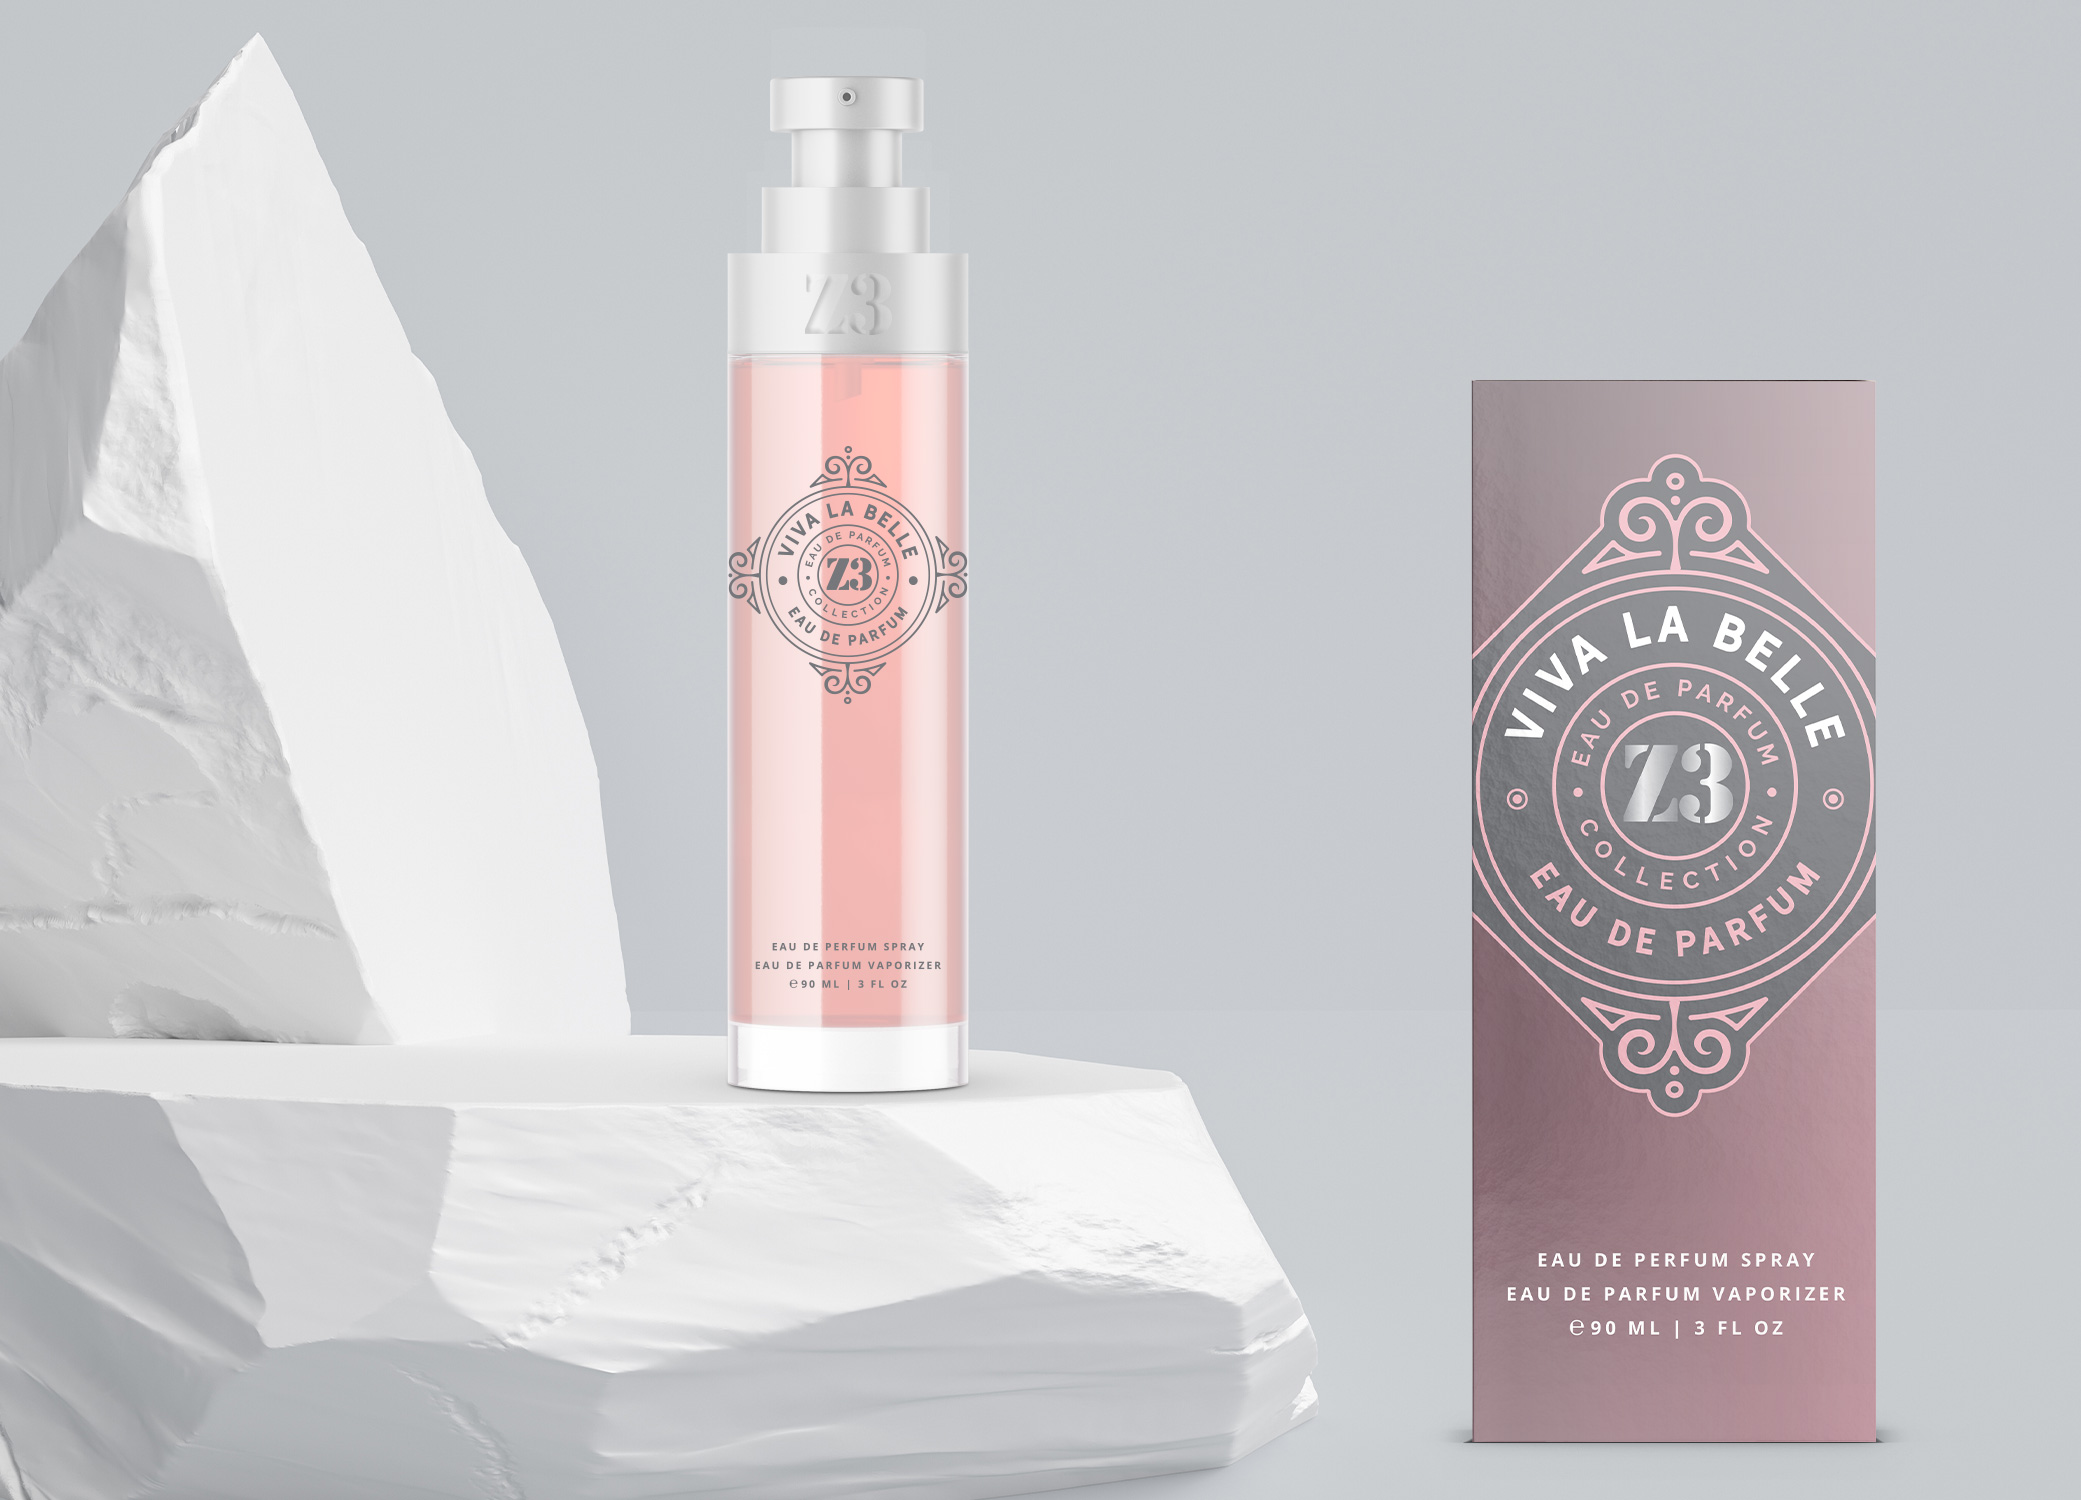 YZY Perfume women's fragrance bottle and package design in pink and charcoal with vintage emblem for Z3 Viva la Belle product.